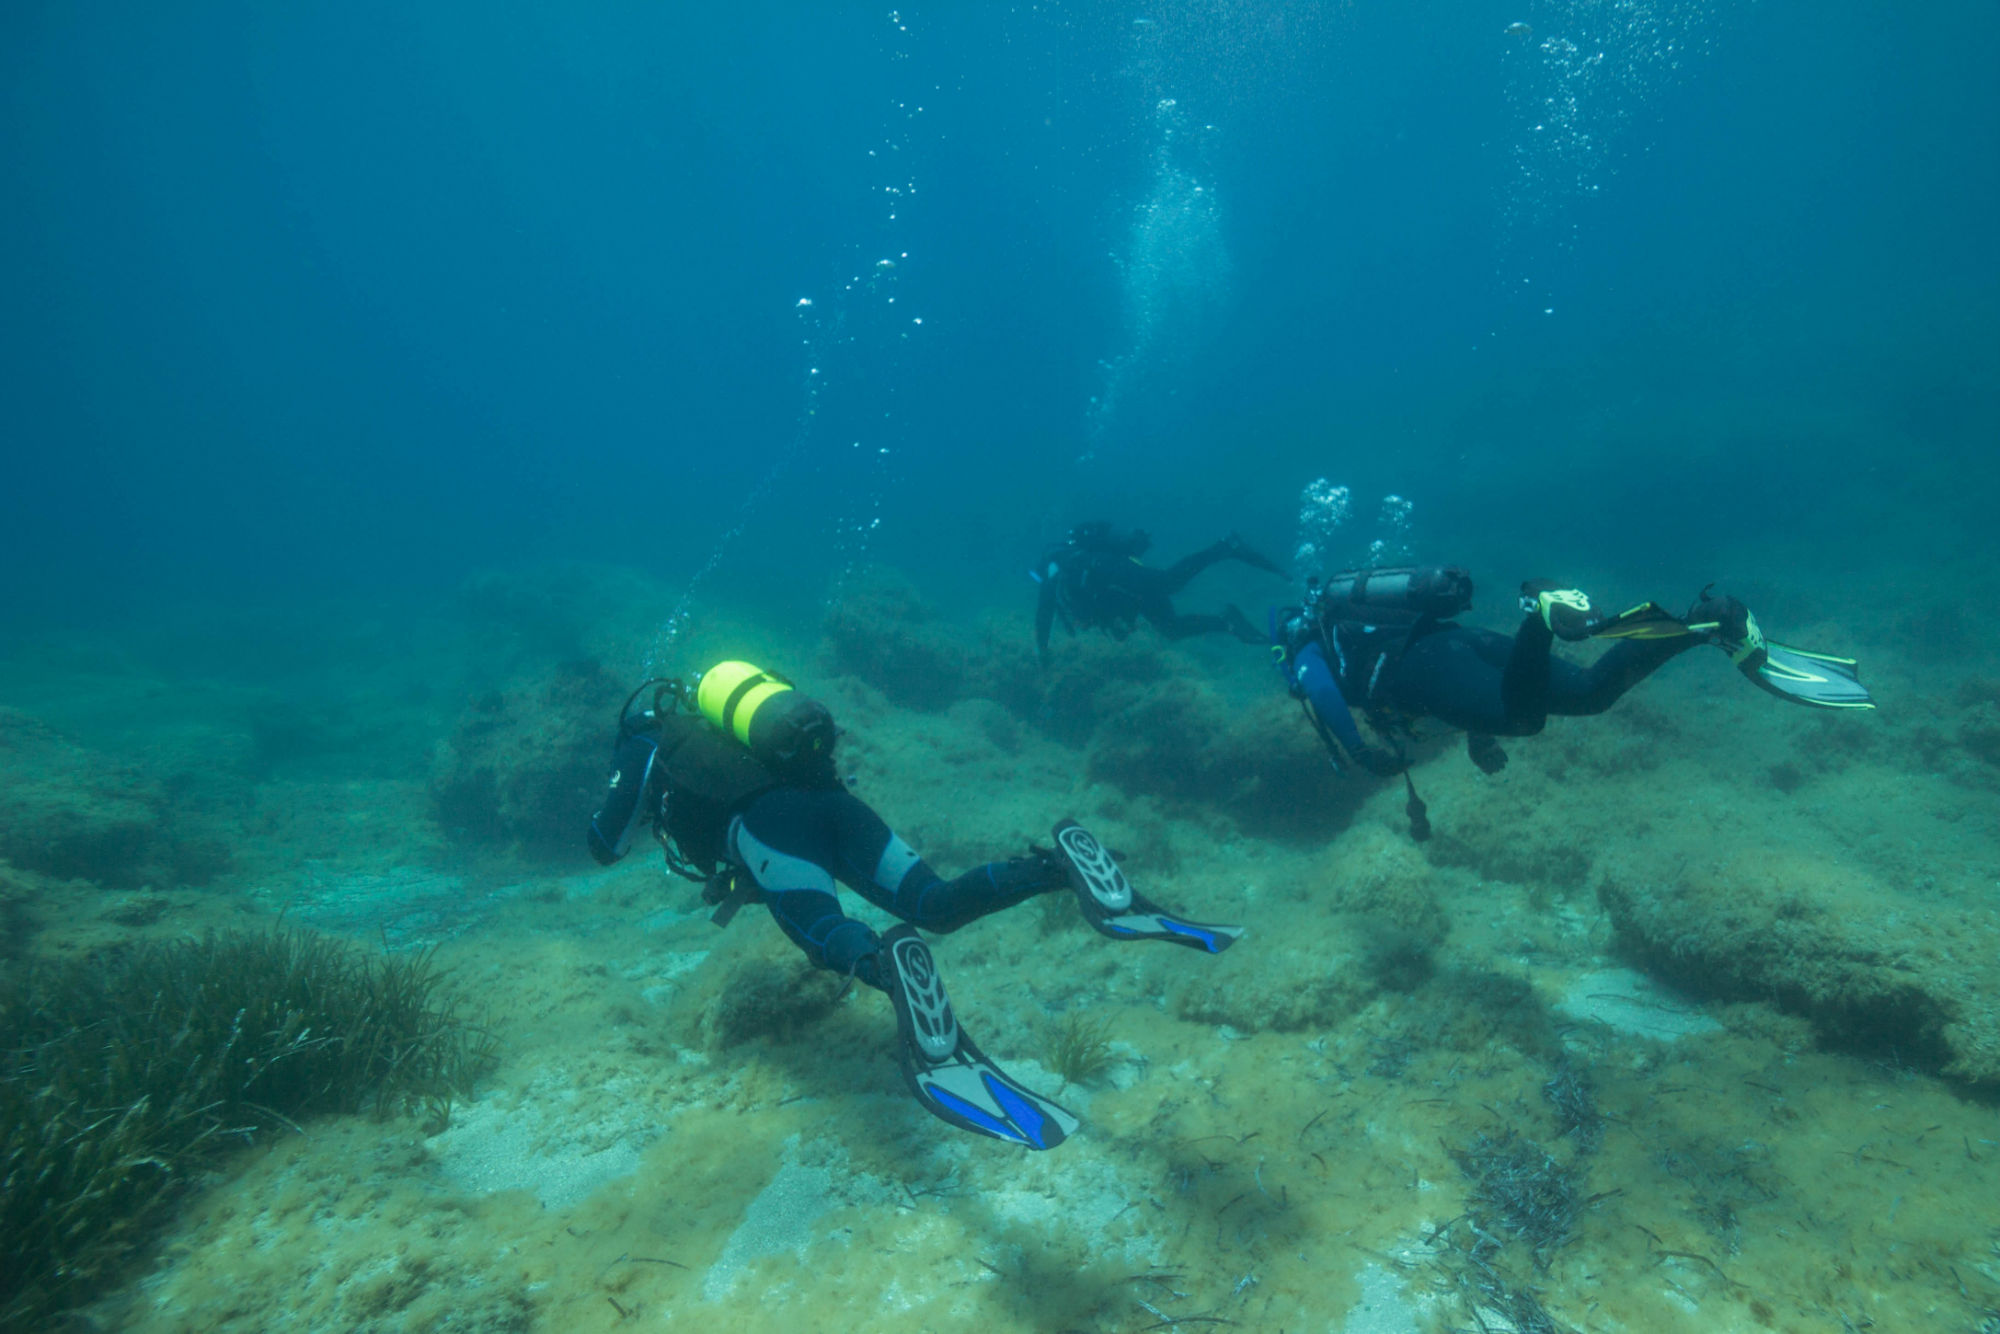 Joey, Nadine And Maximo Diving Along The Bottom